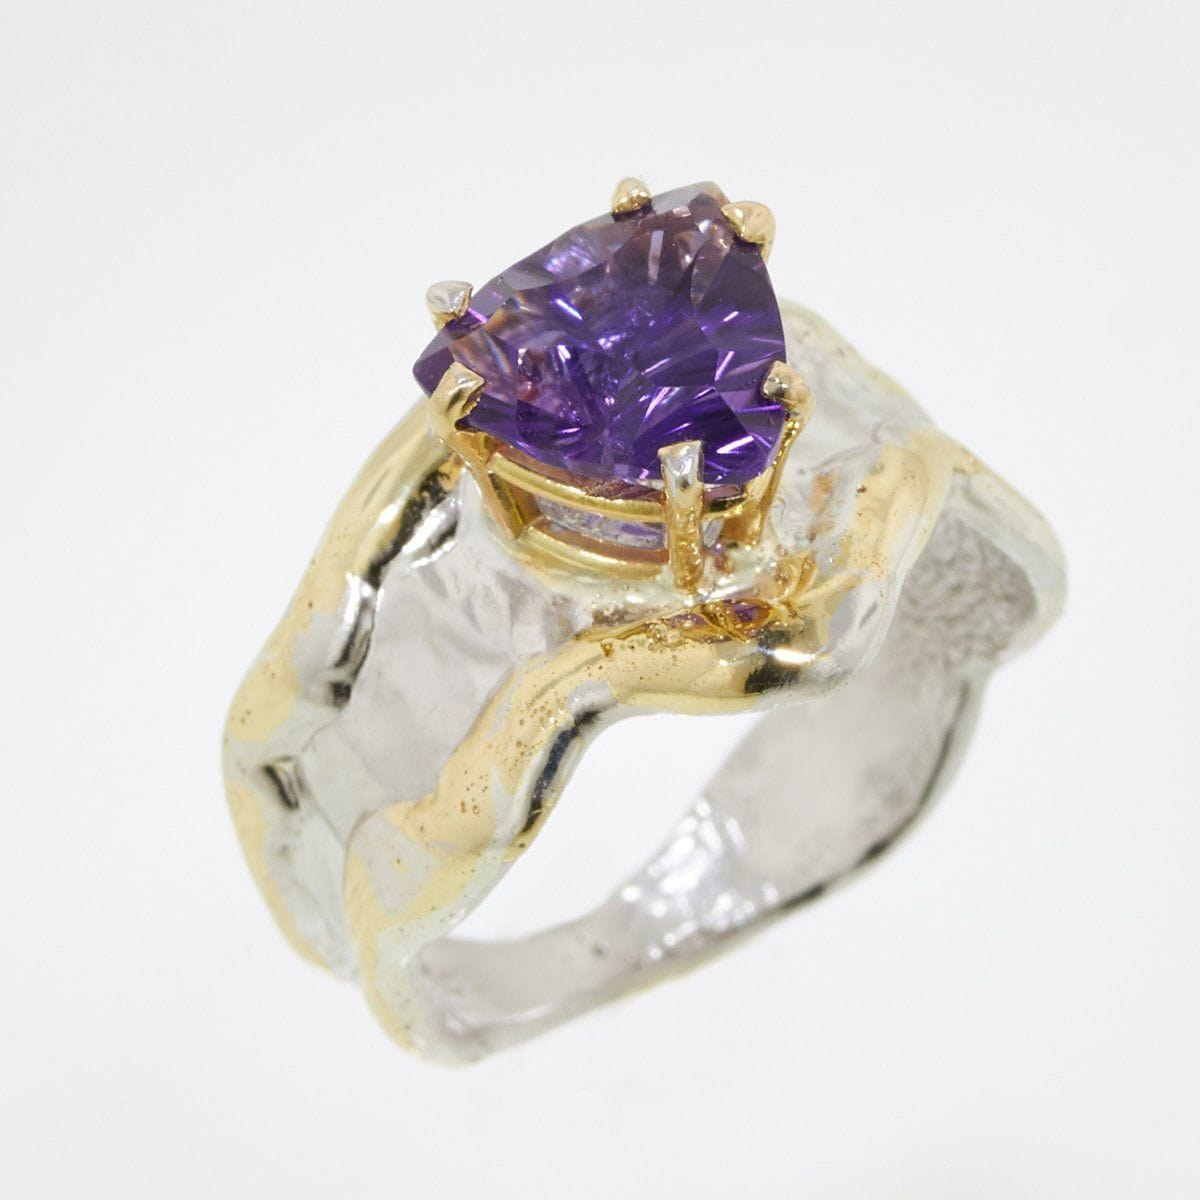 14K Gold & Crystalline Silver Amethyst Ring - 32872-Fusion Designs-Renee Taylor Gallery